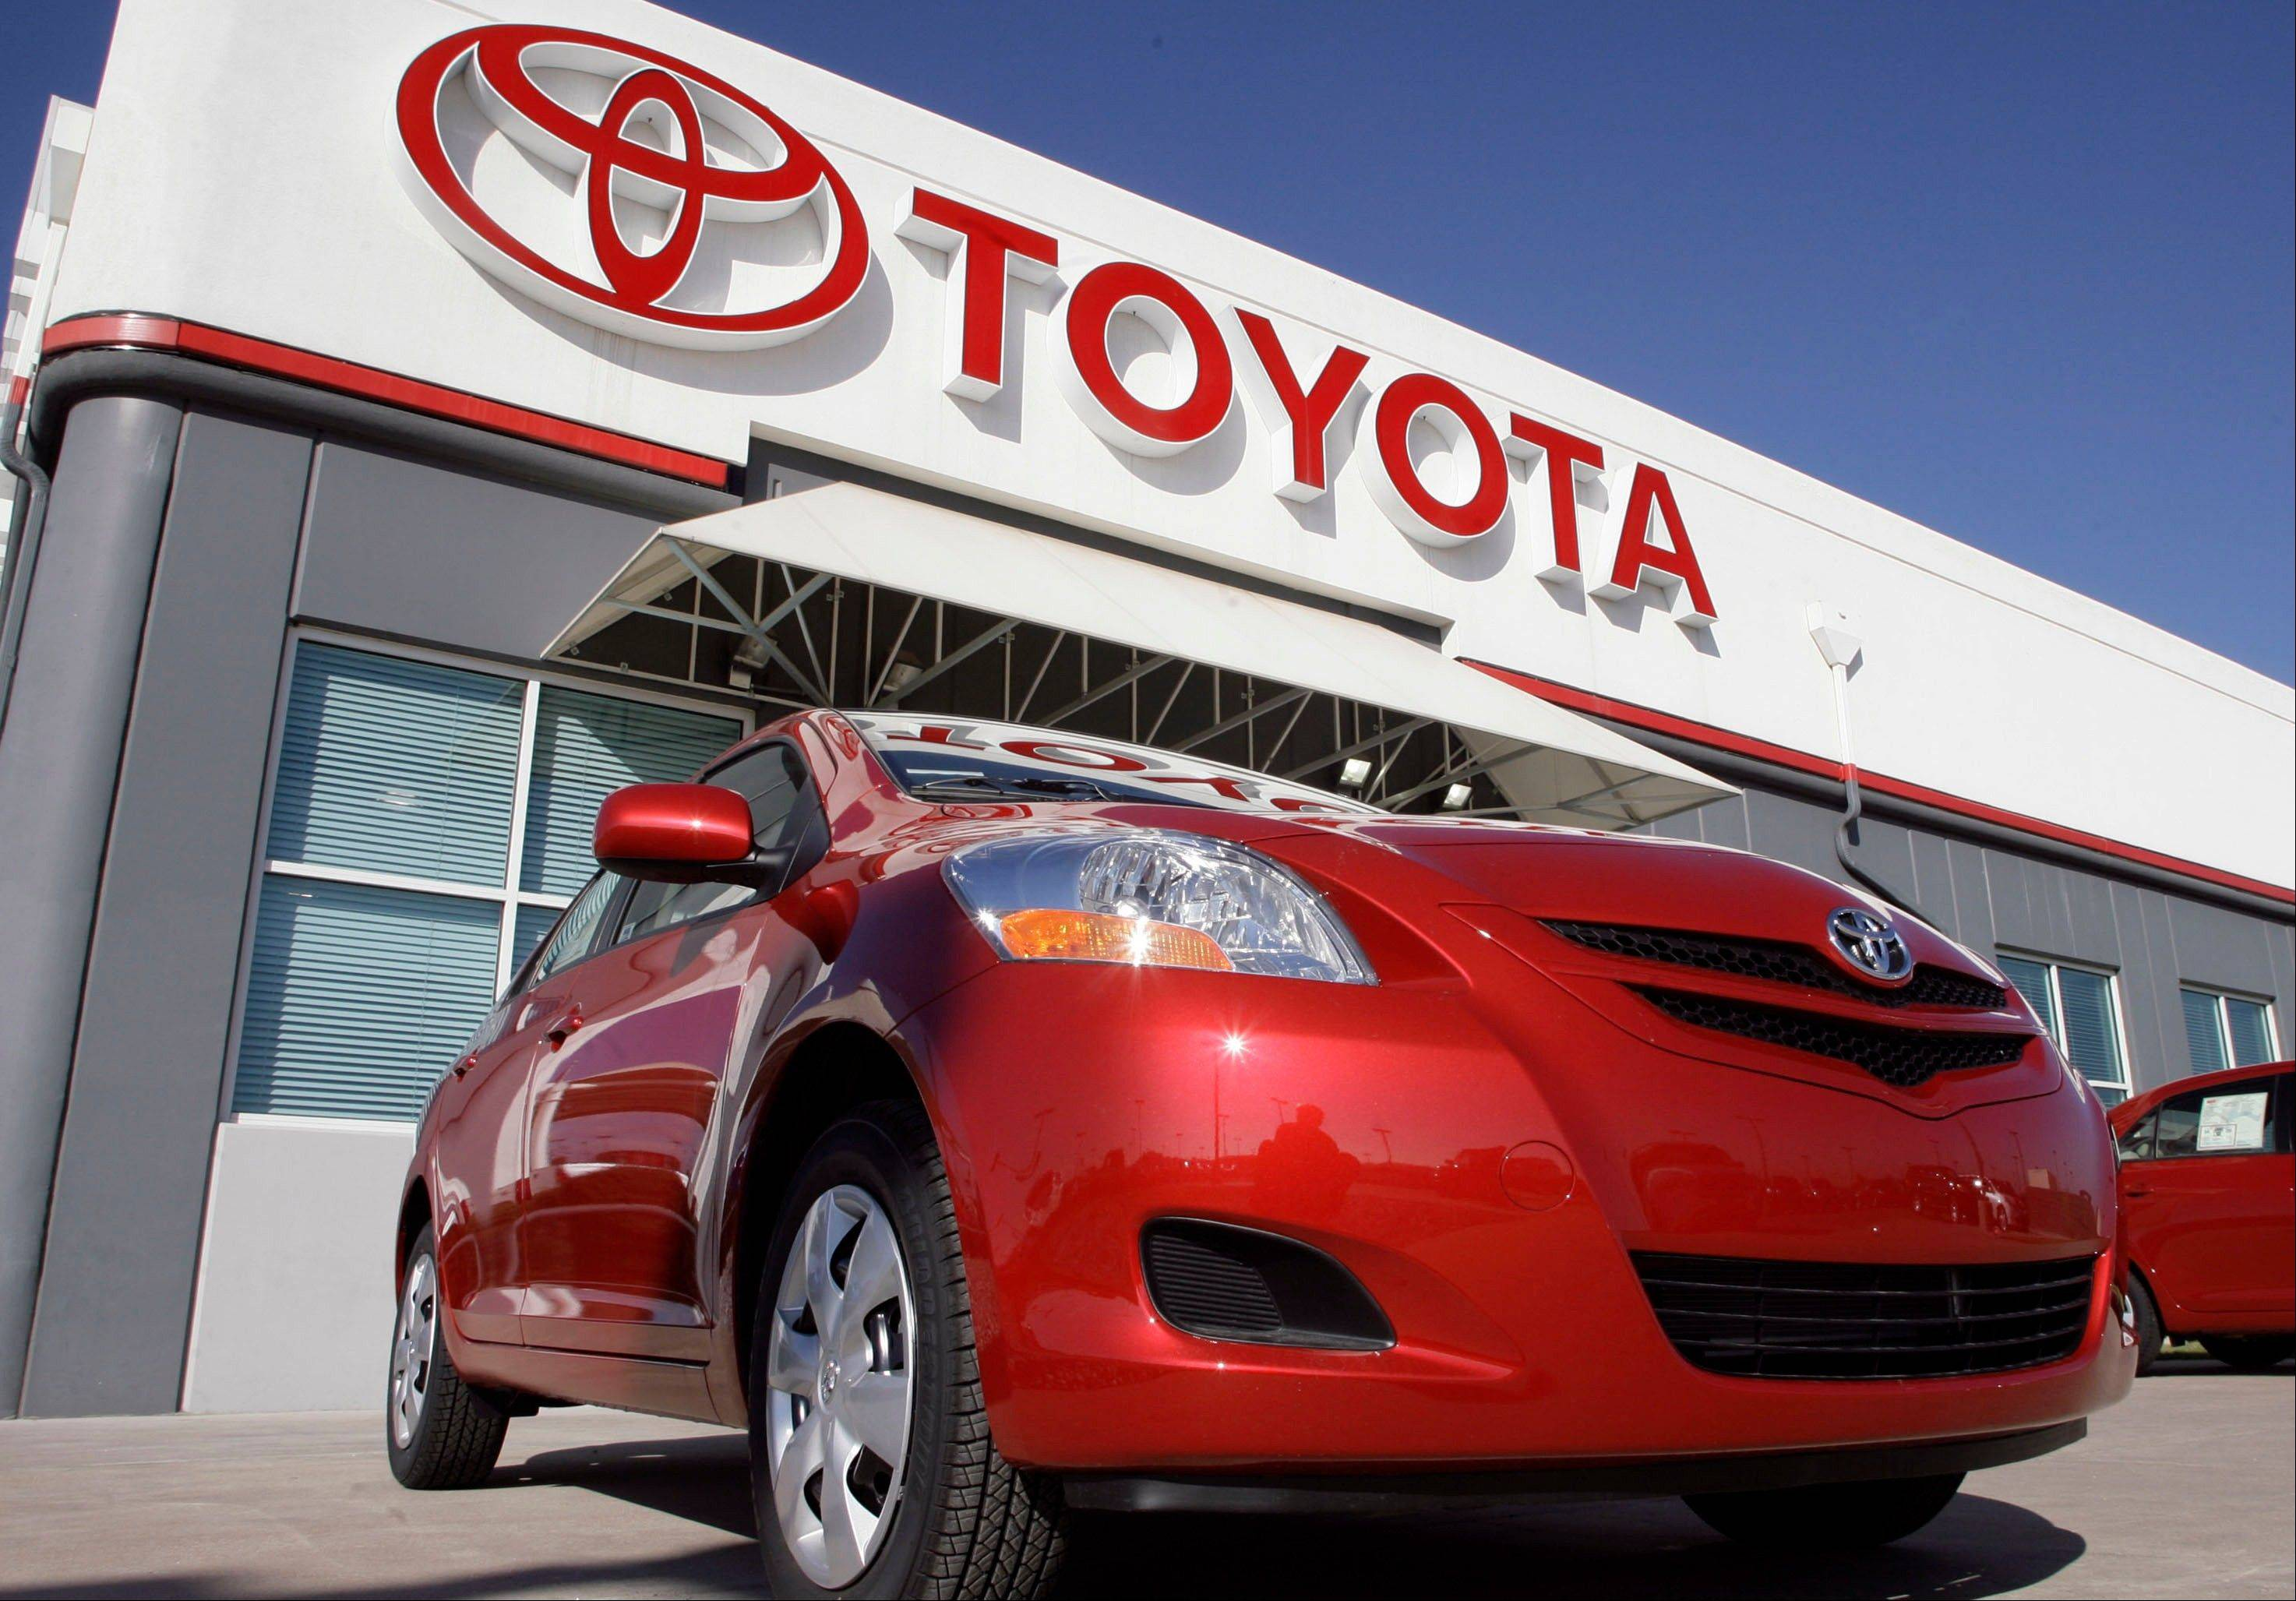 Toyota Motor Corp. is recalling 7.43 million vehicles in the U.S., Japan, Europe and elsewhere around the world for a faulty power-window switch — the latest, massive quality woes for Japan's top automaker. The recall, announced Wednesday, Oct. 10, 2012 affects more than a dozen models produced from 2005 through 2010.